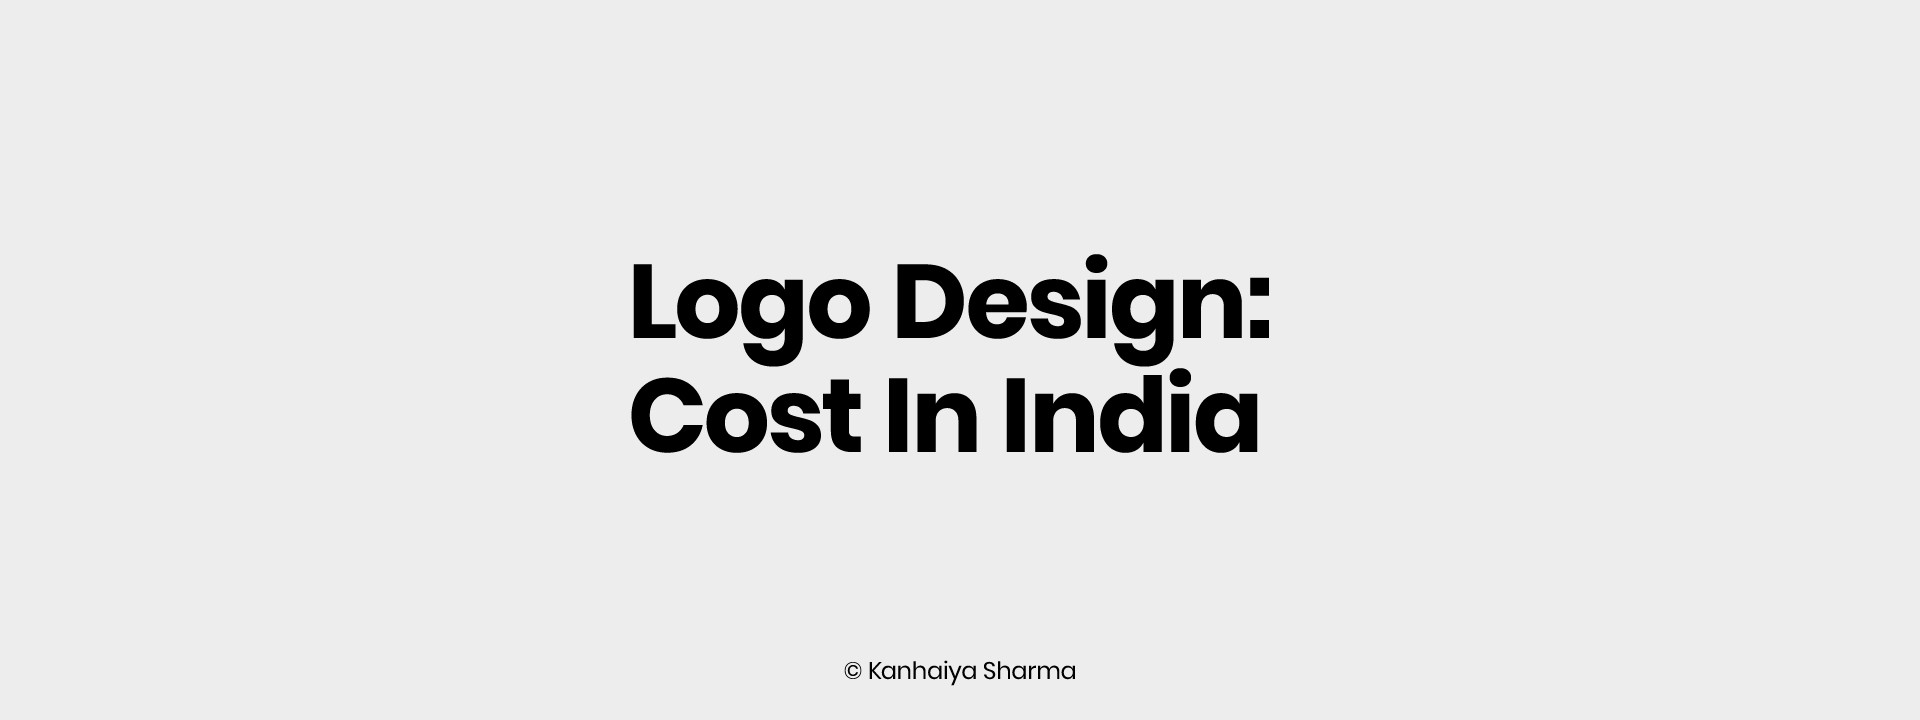 Logo Design Cost In India Expained Medium